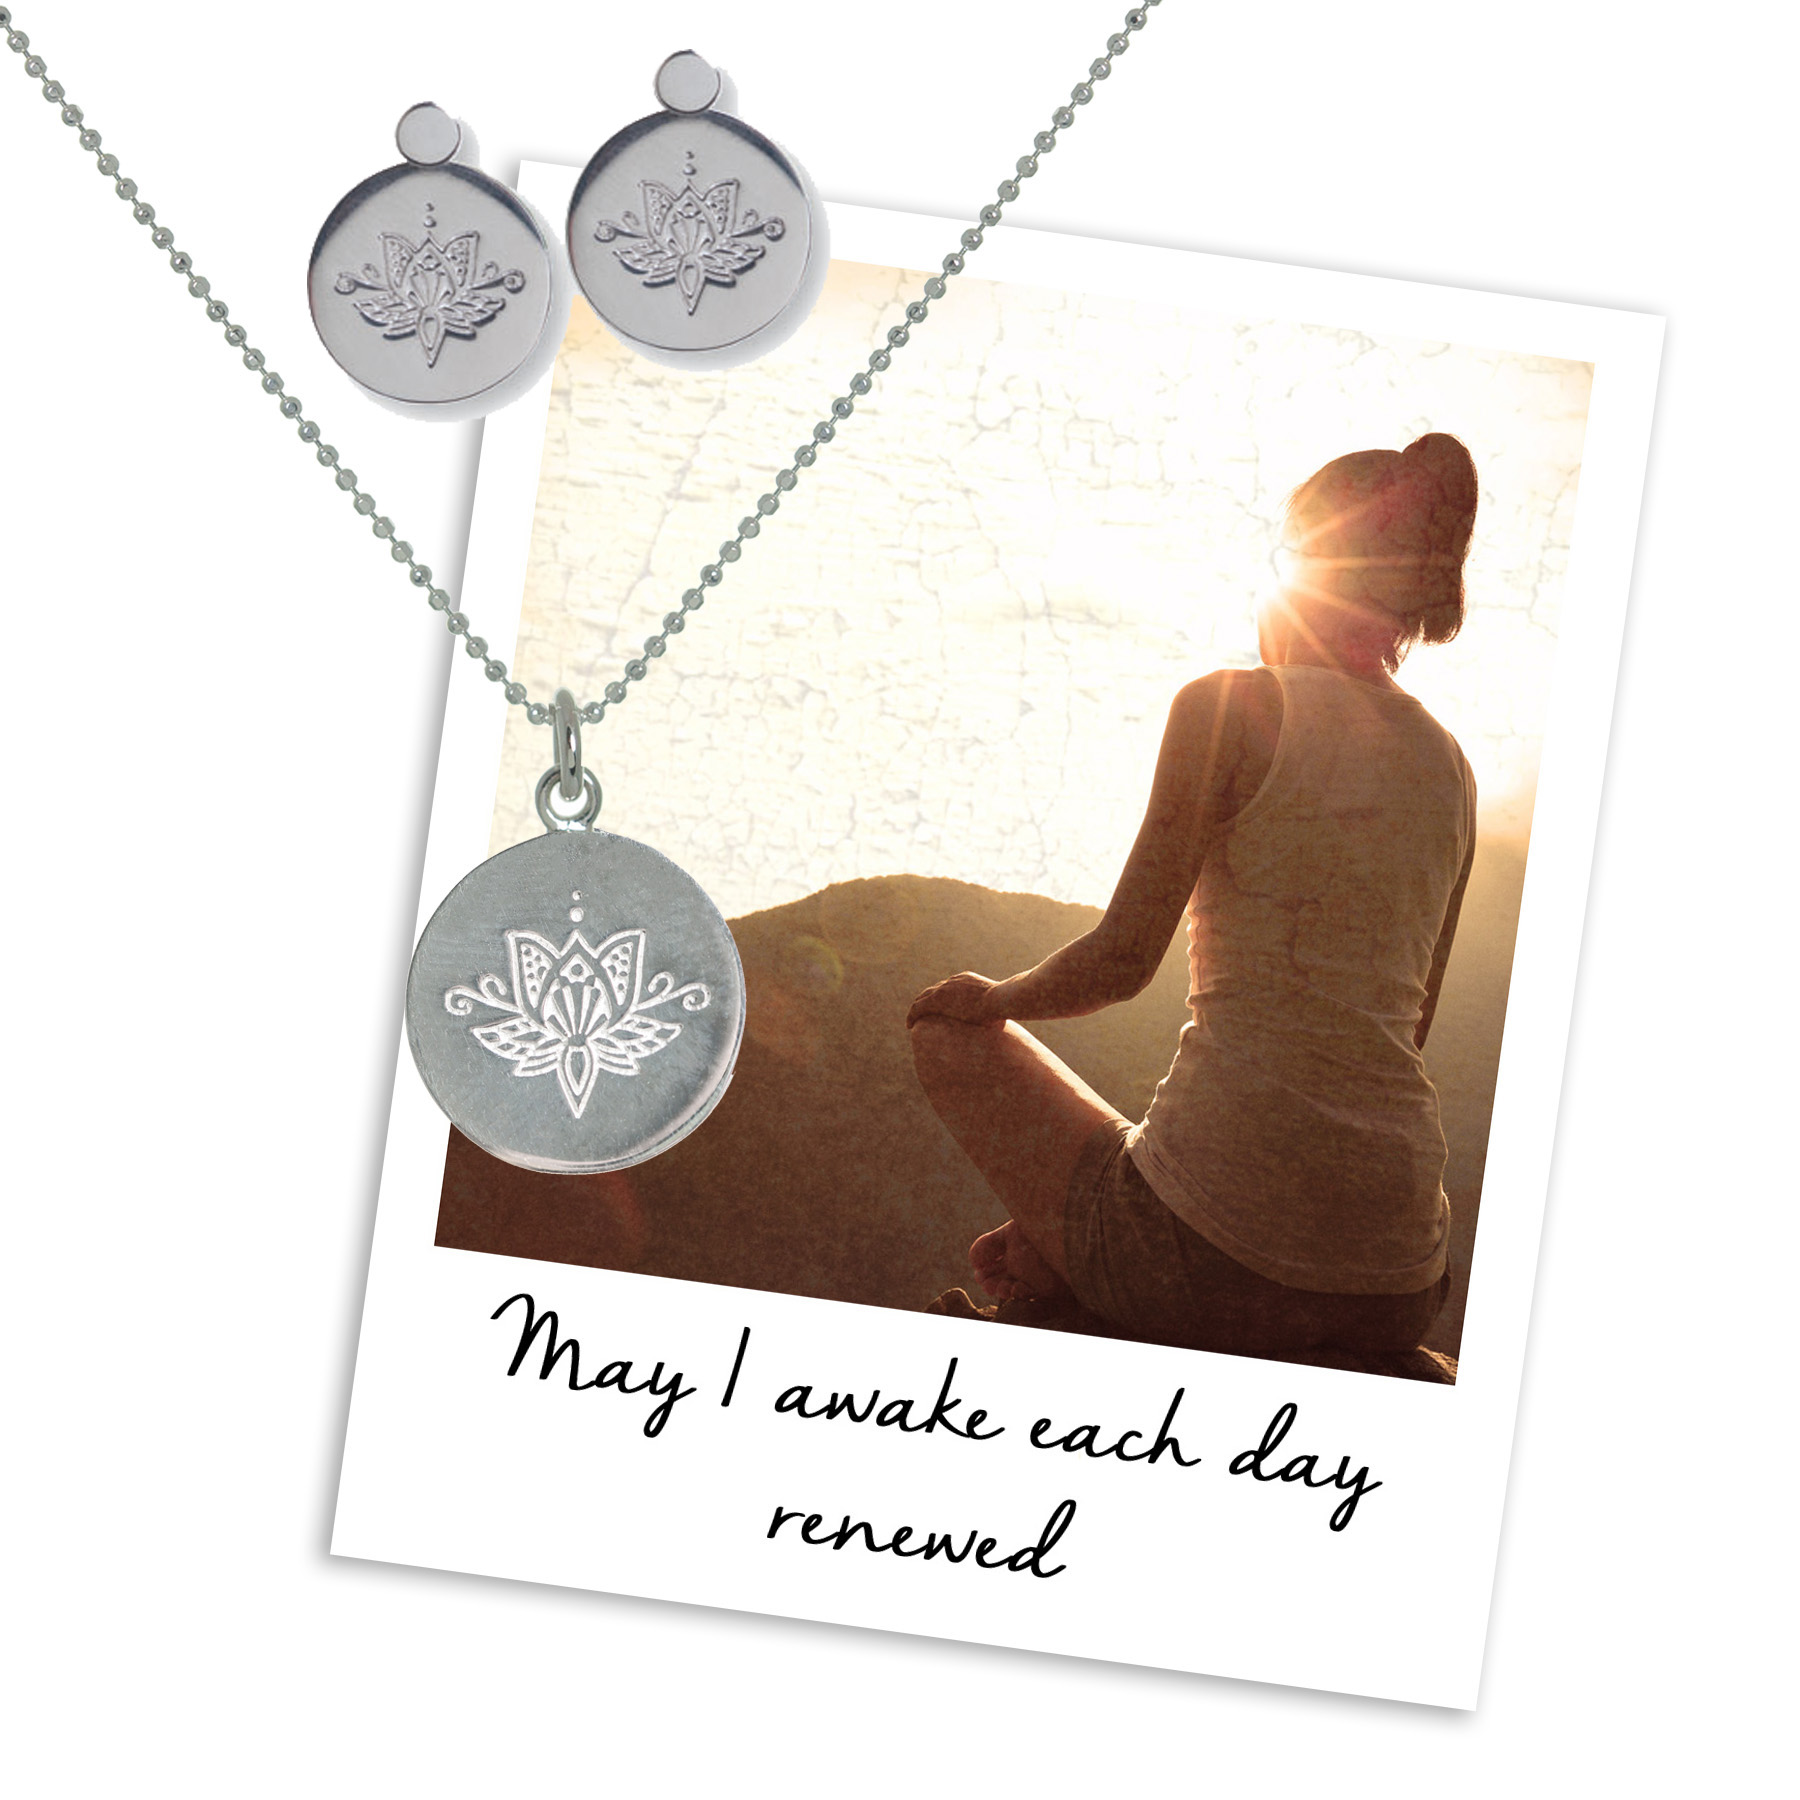 Lotus Necklace & Earrings - may i awake each day renewed